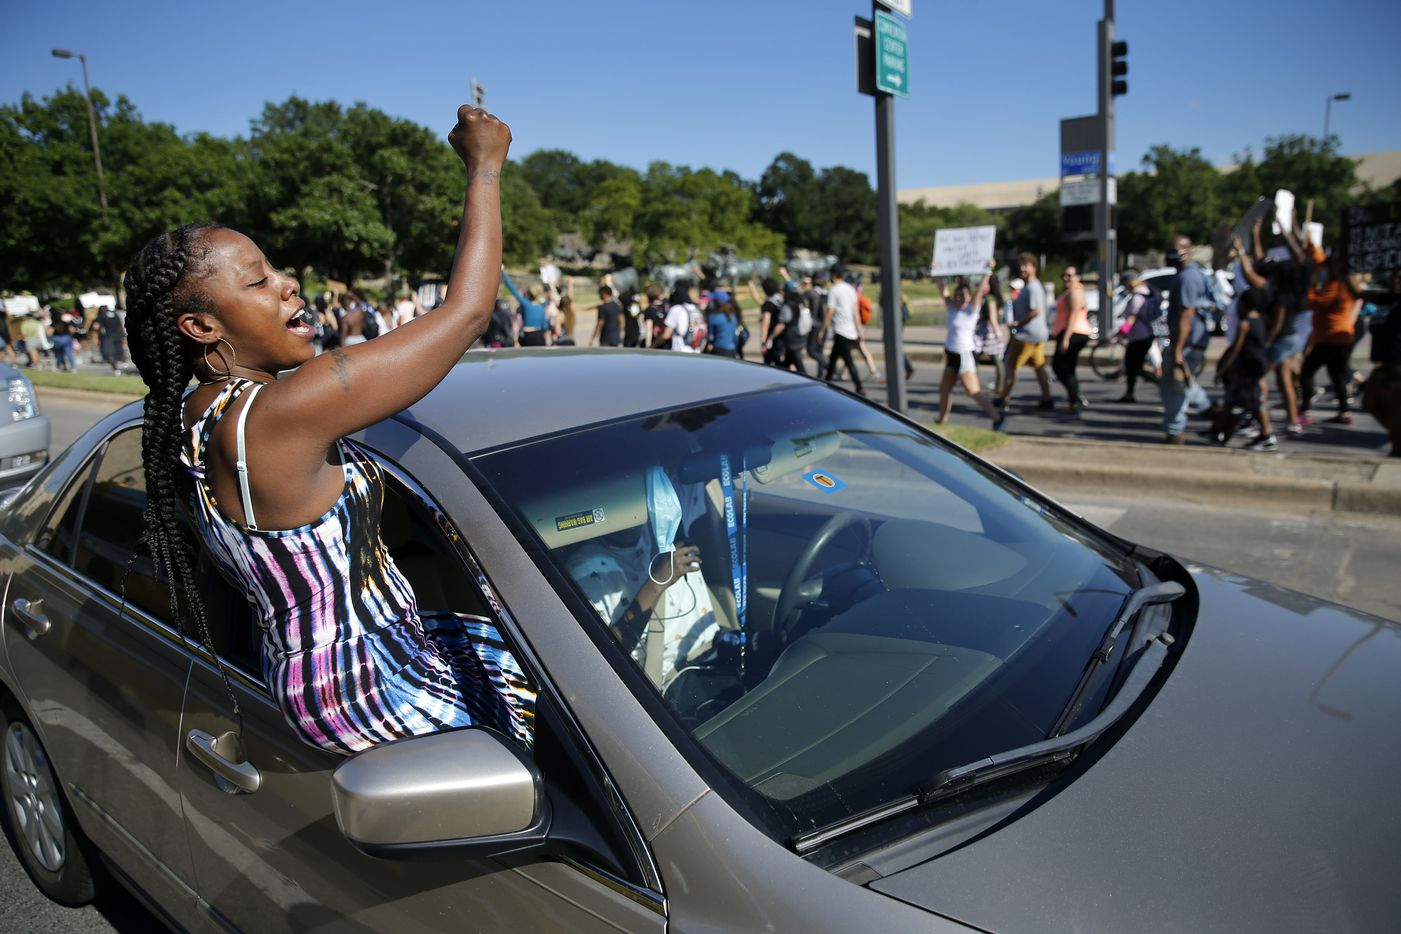 Angel Brown of Dallas crawls out of the car window to support Black Lives Matter supports marching back to Dallas City Hall after a rally in  Dealey Plaza, Wednesday, June 3, 2020. (Tom Fox/The Dallas Morning News)